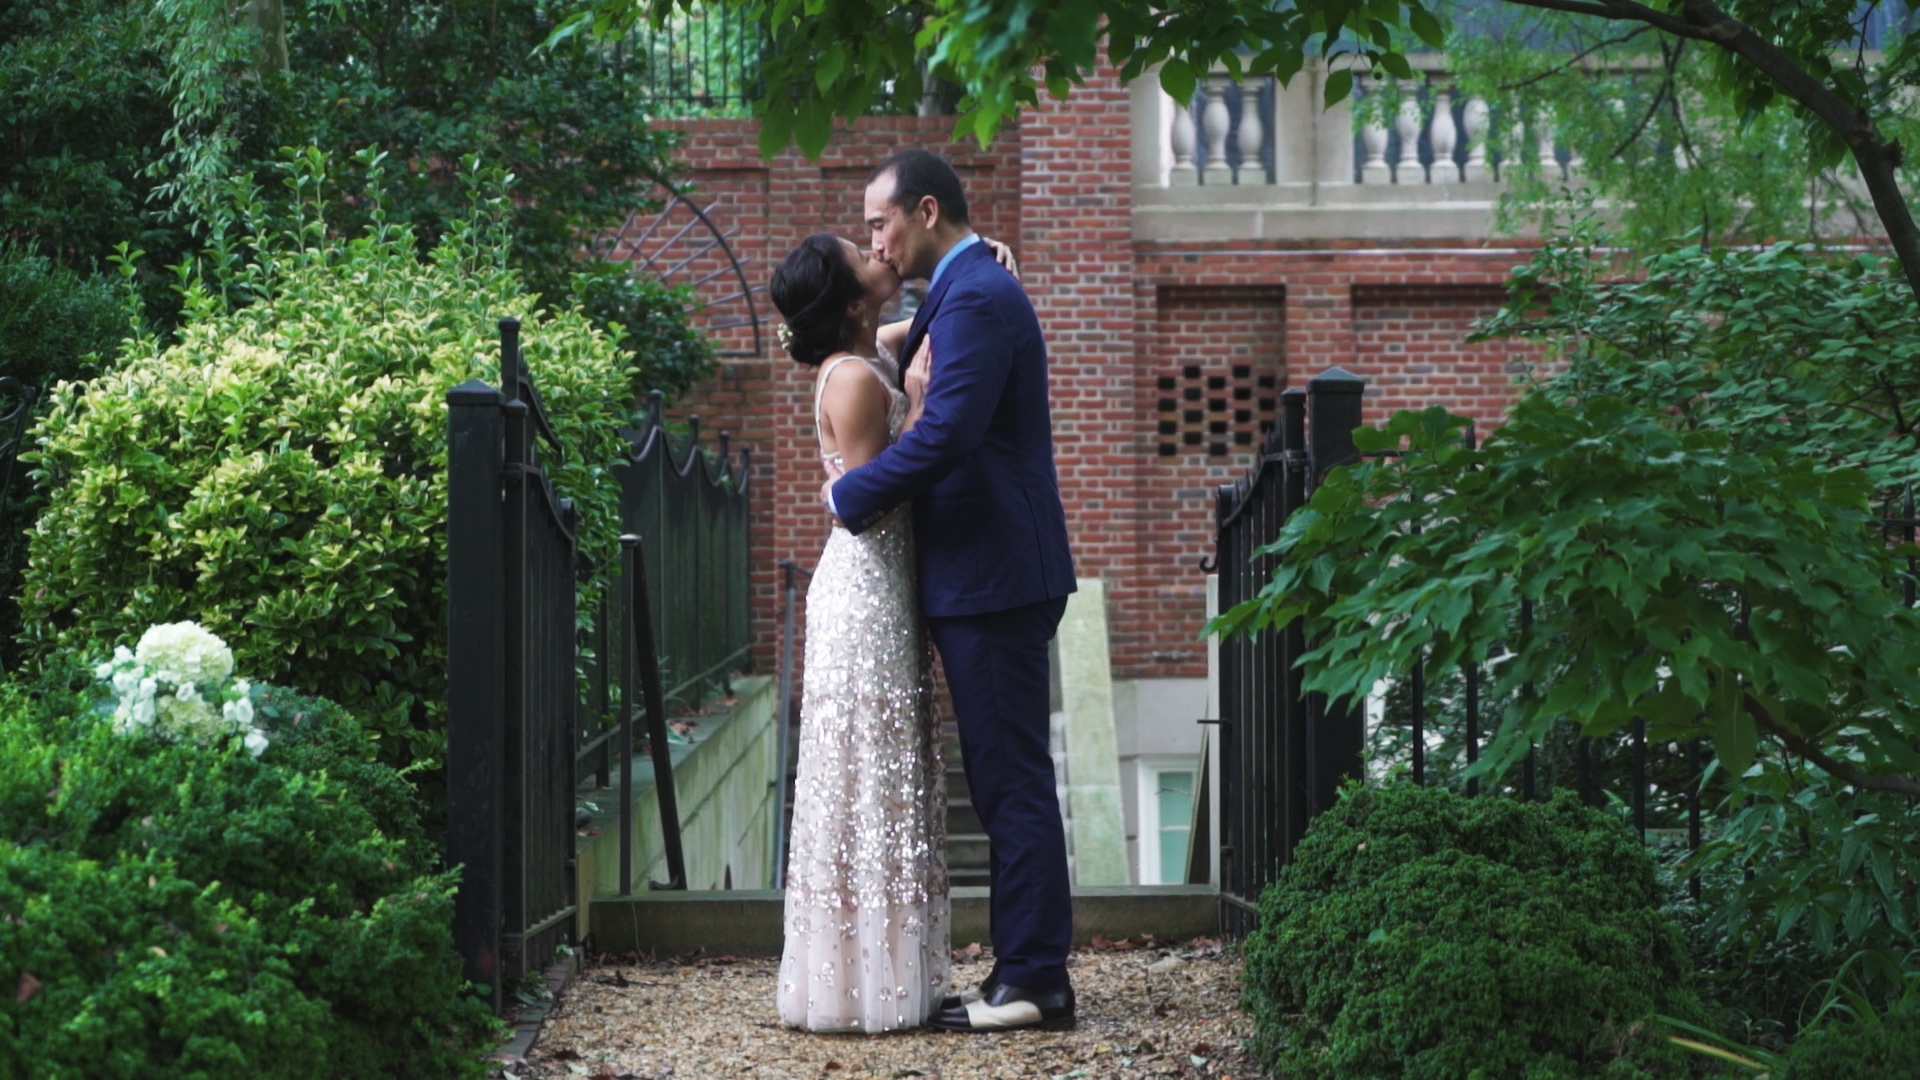 Bryan + Elle | District of Columbia, District of Columbia | Dumbarton House